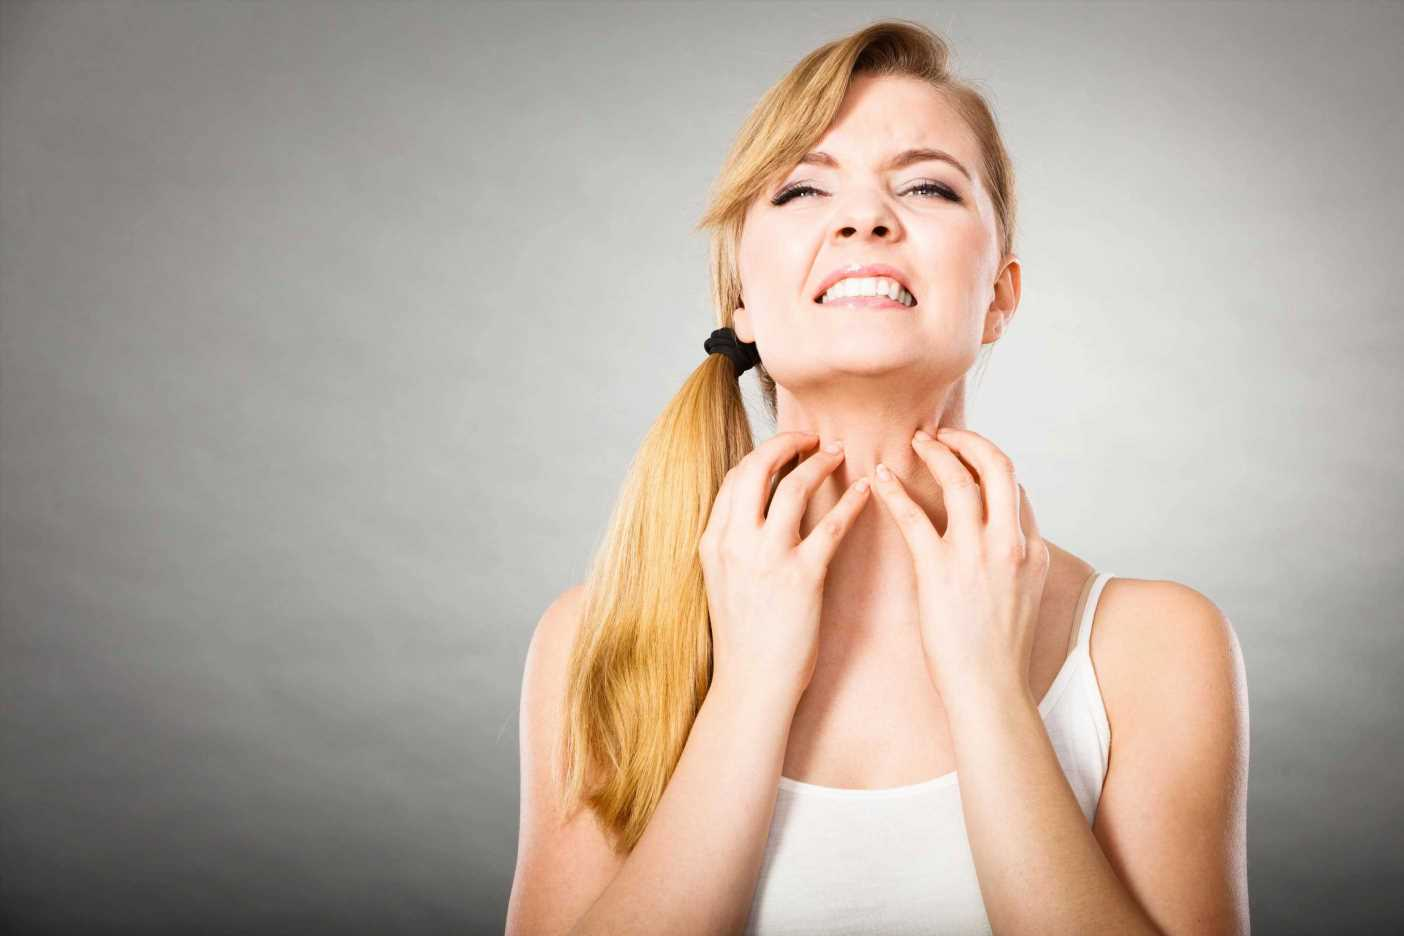 Can hay fever cause itchy skin, what is pollen rash and how can I treat itchy eyes and hives?